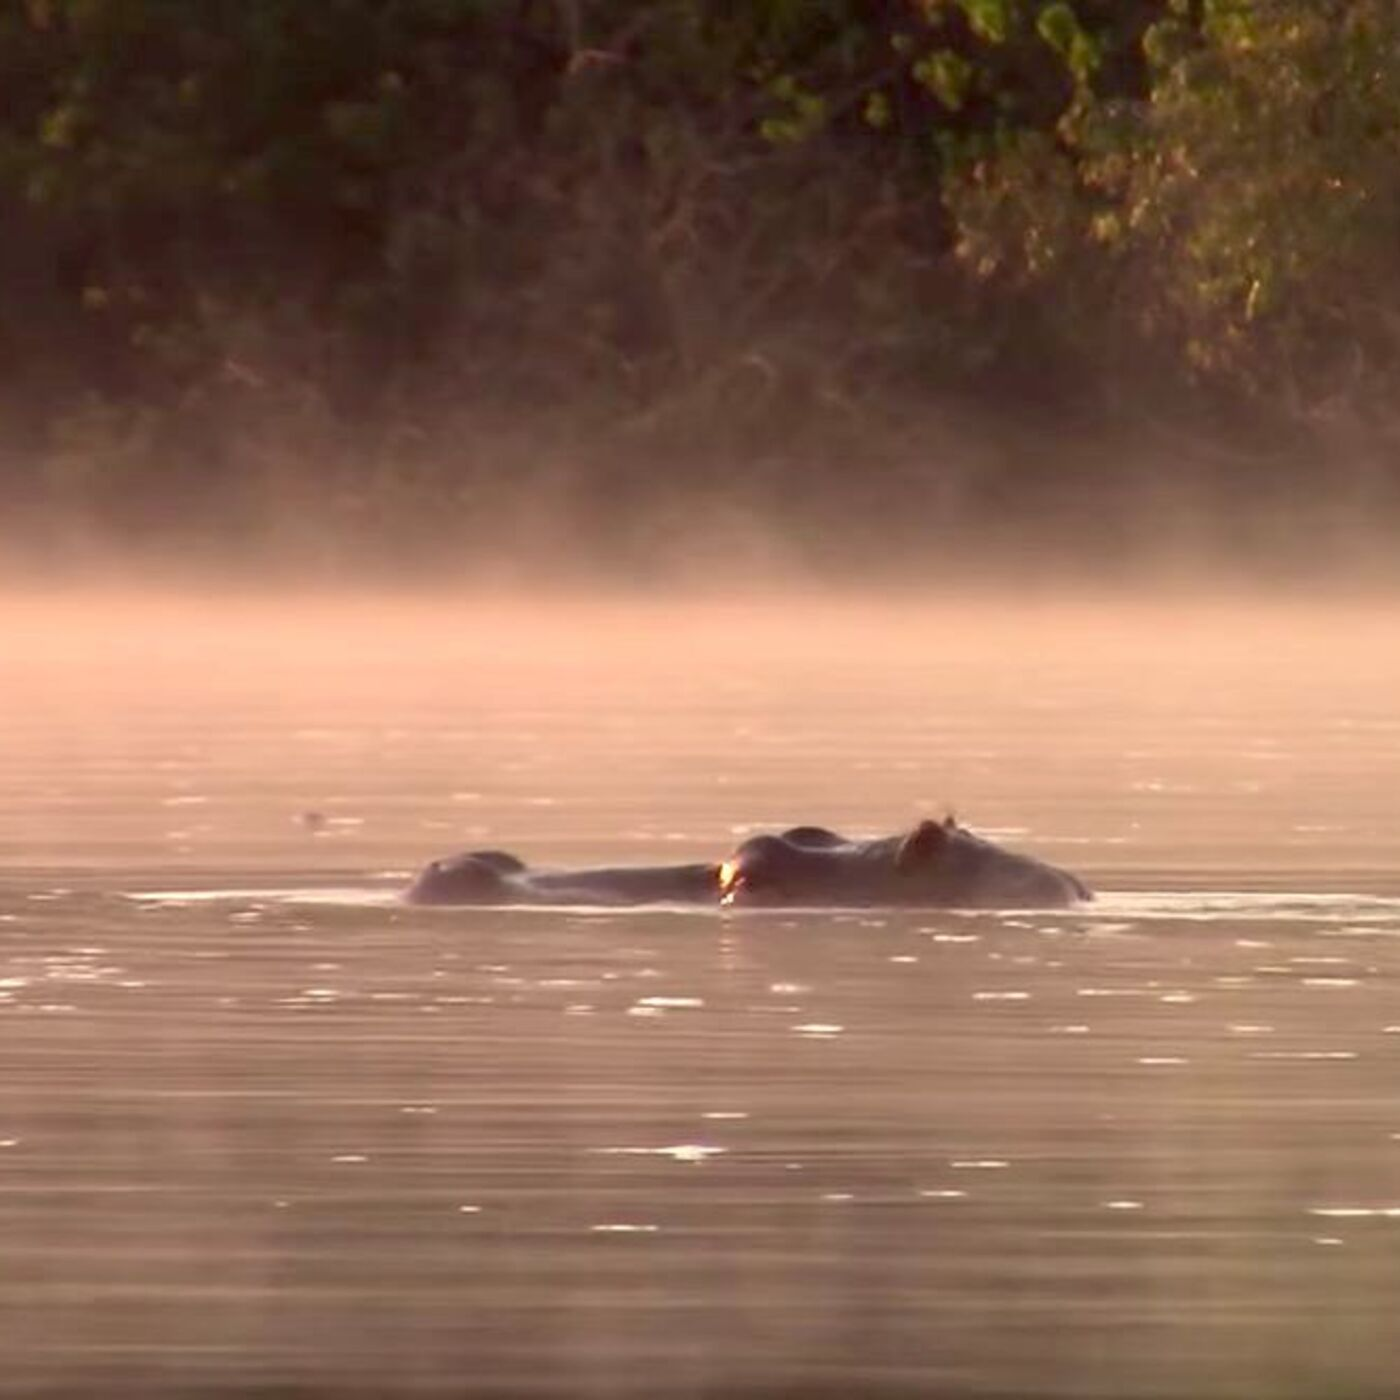 Kayak the Kwanza: The World-Record Paddle Down Angola's Longest River with Travel Author Oscar Scafidi